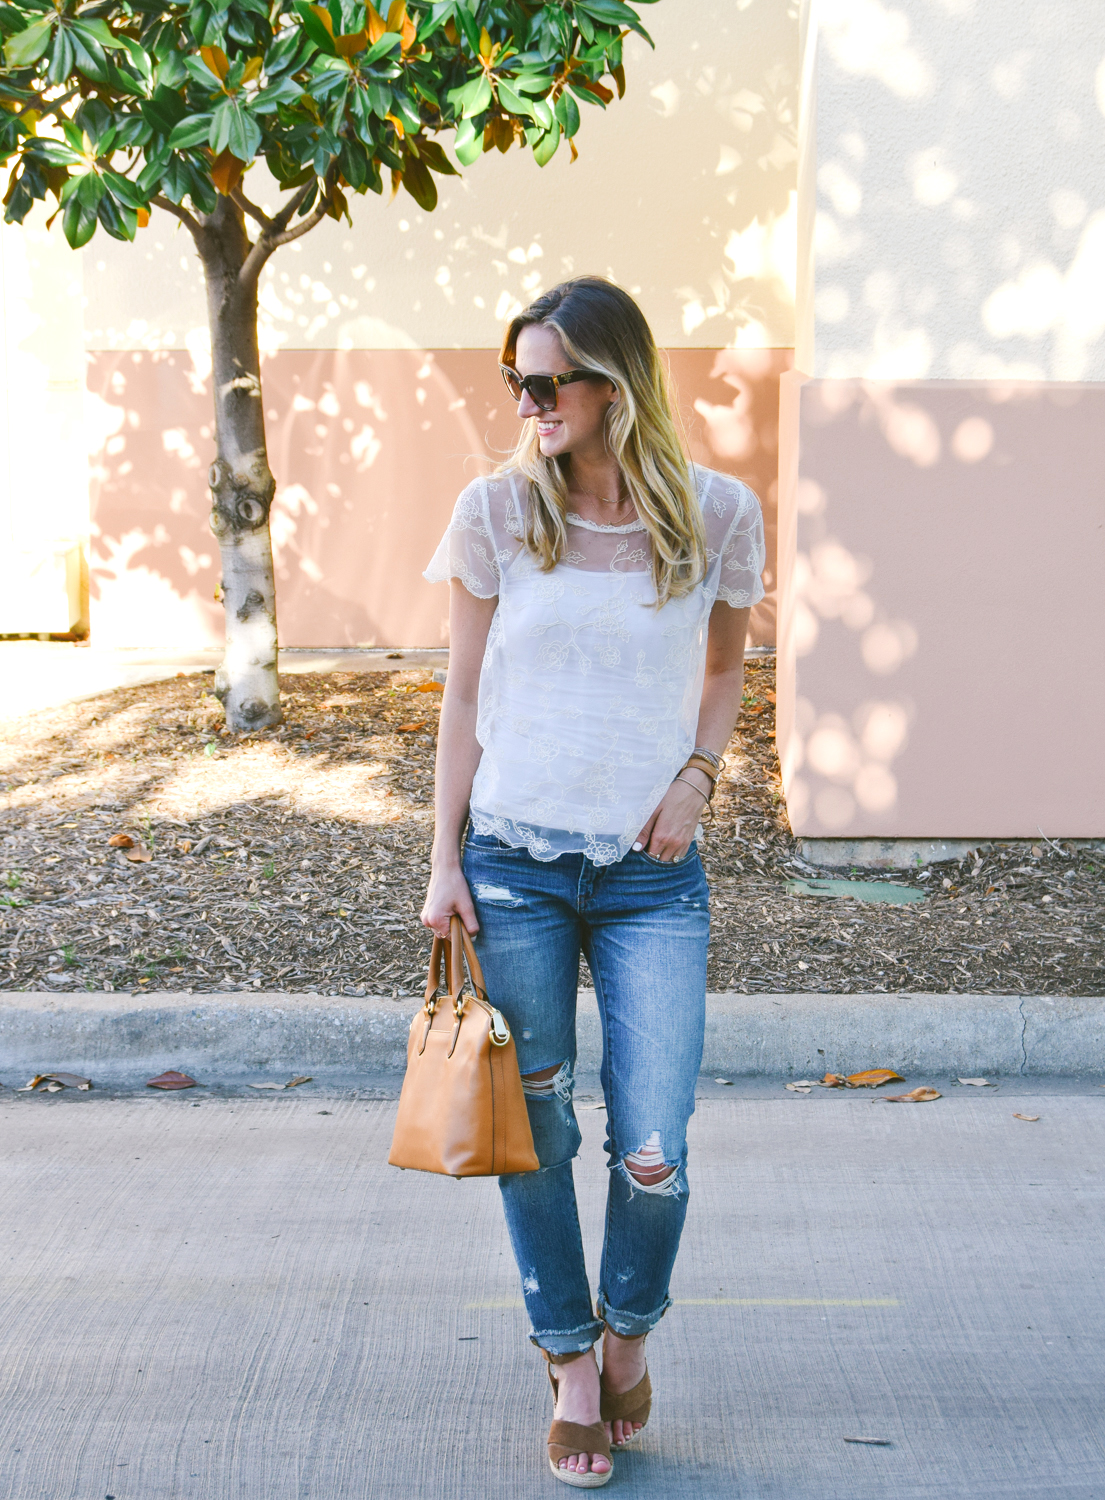 livvyland-blog-olivia-watson-austin-texas-fashion-blogger-hinge-mesh-lace-embroidered-top-sheer-distressed-boyfriend-jeans-brahmin-duxbury-southcoast-collection-2.jpg